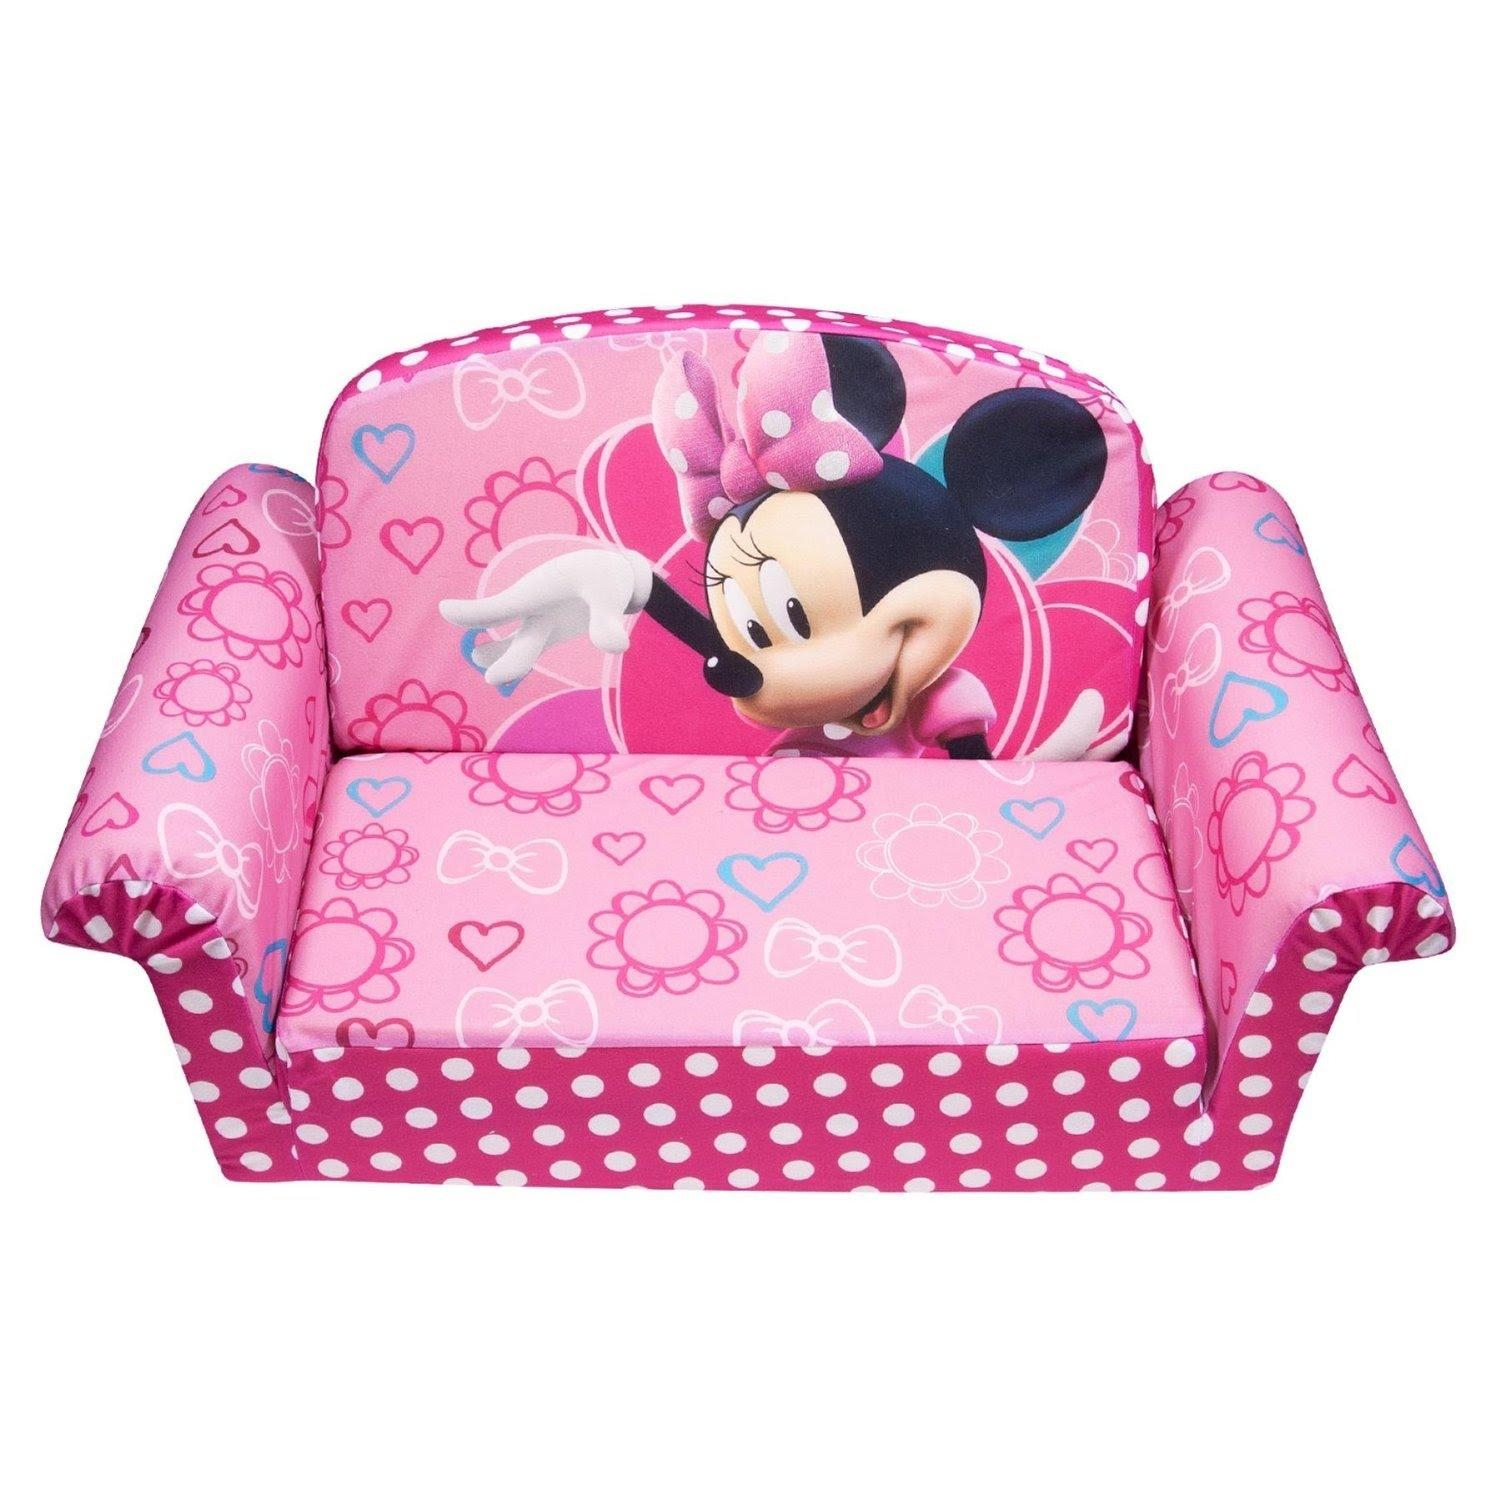 mickey mouse clubhouse flip open sofa with slumber bed large black fabric corner 2019 latest sofas ideas